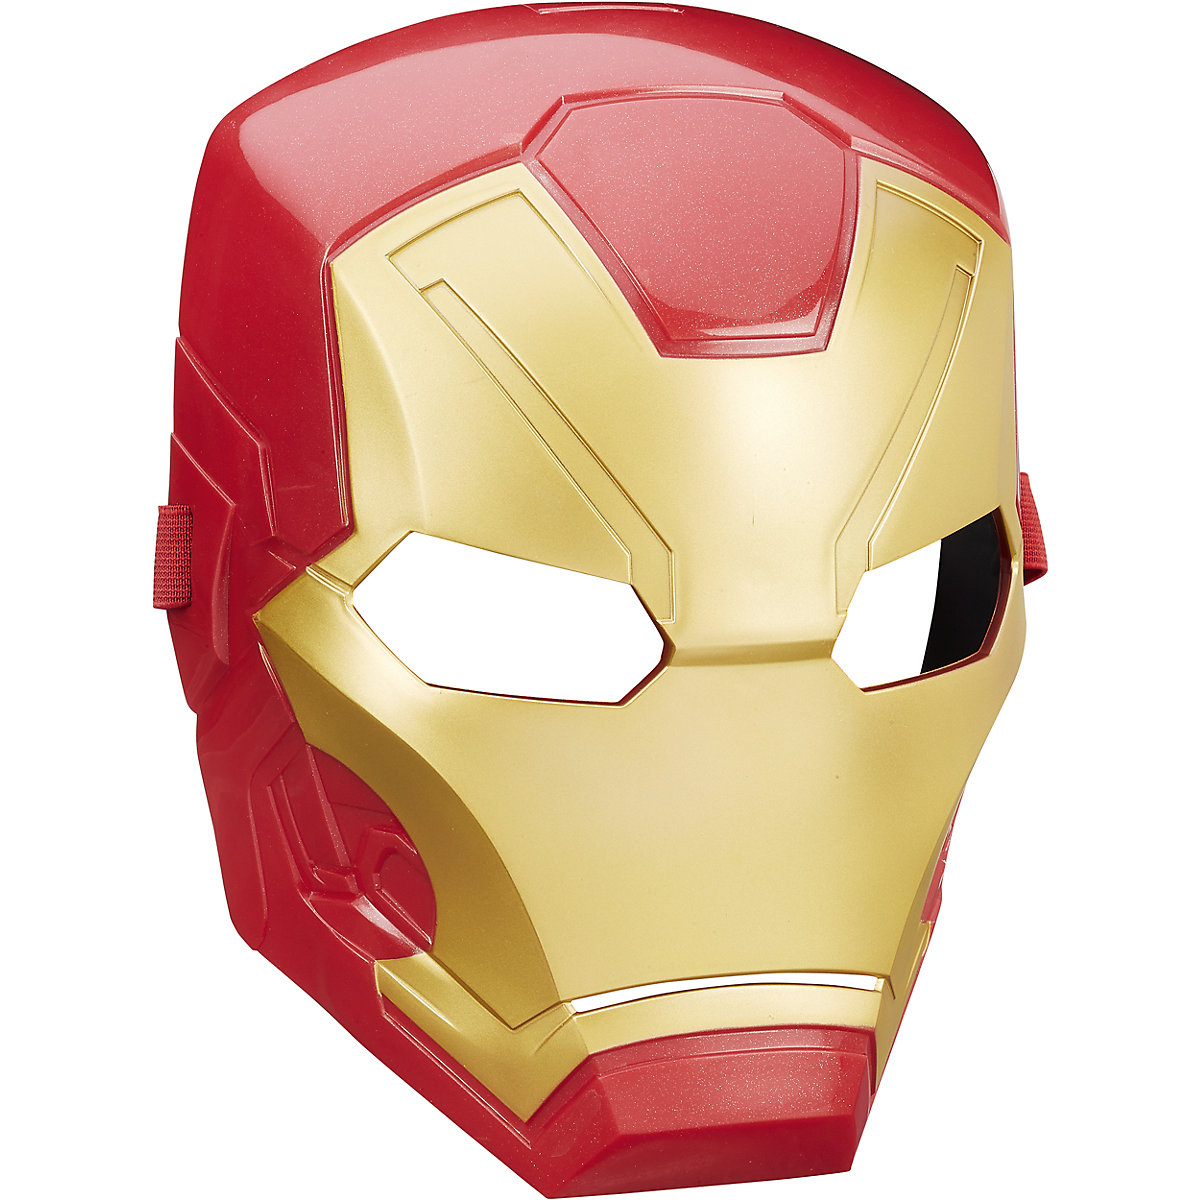 Hasbro  Mask 5064751 playsets interactive masks aprilpromo Avengers Marvel Iron Man avengers 2 age of ultron iron man mark 43 pvc action figure collectible model toy 9 23cm kt056